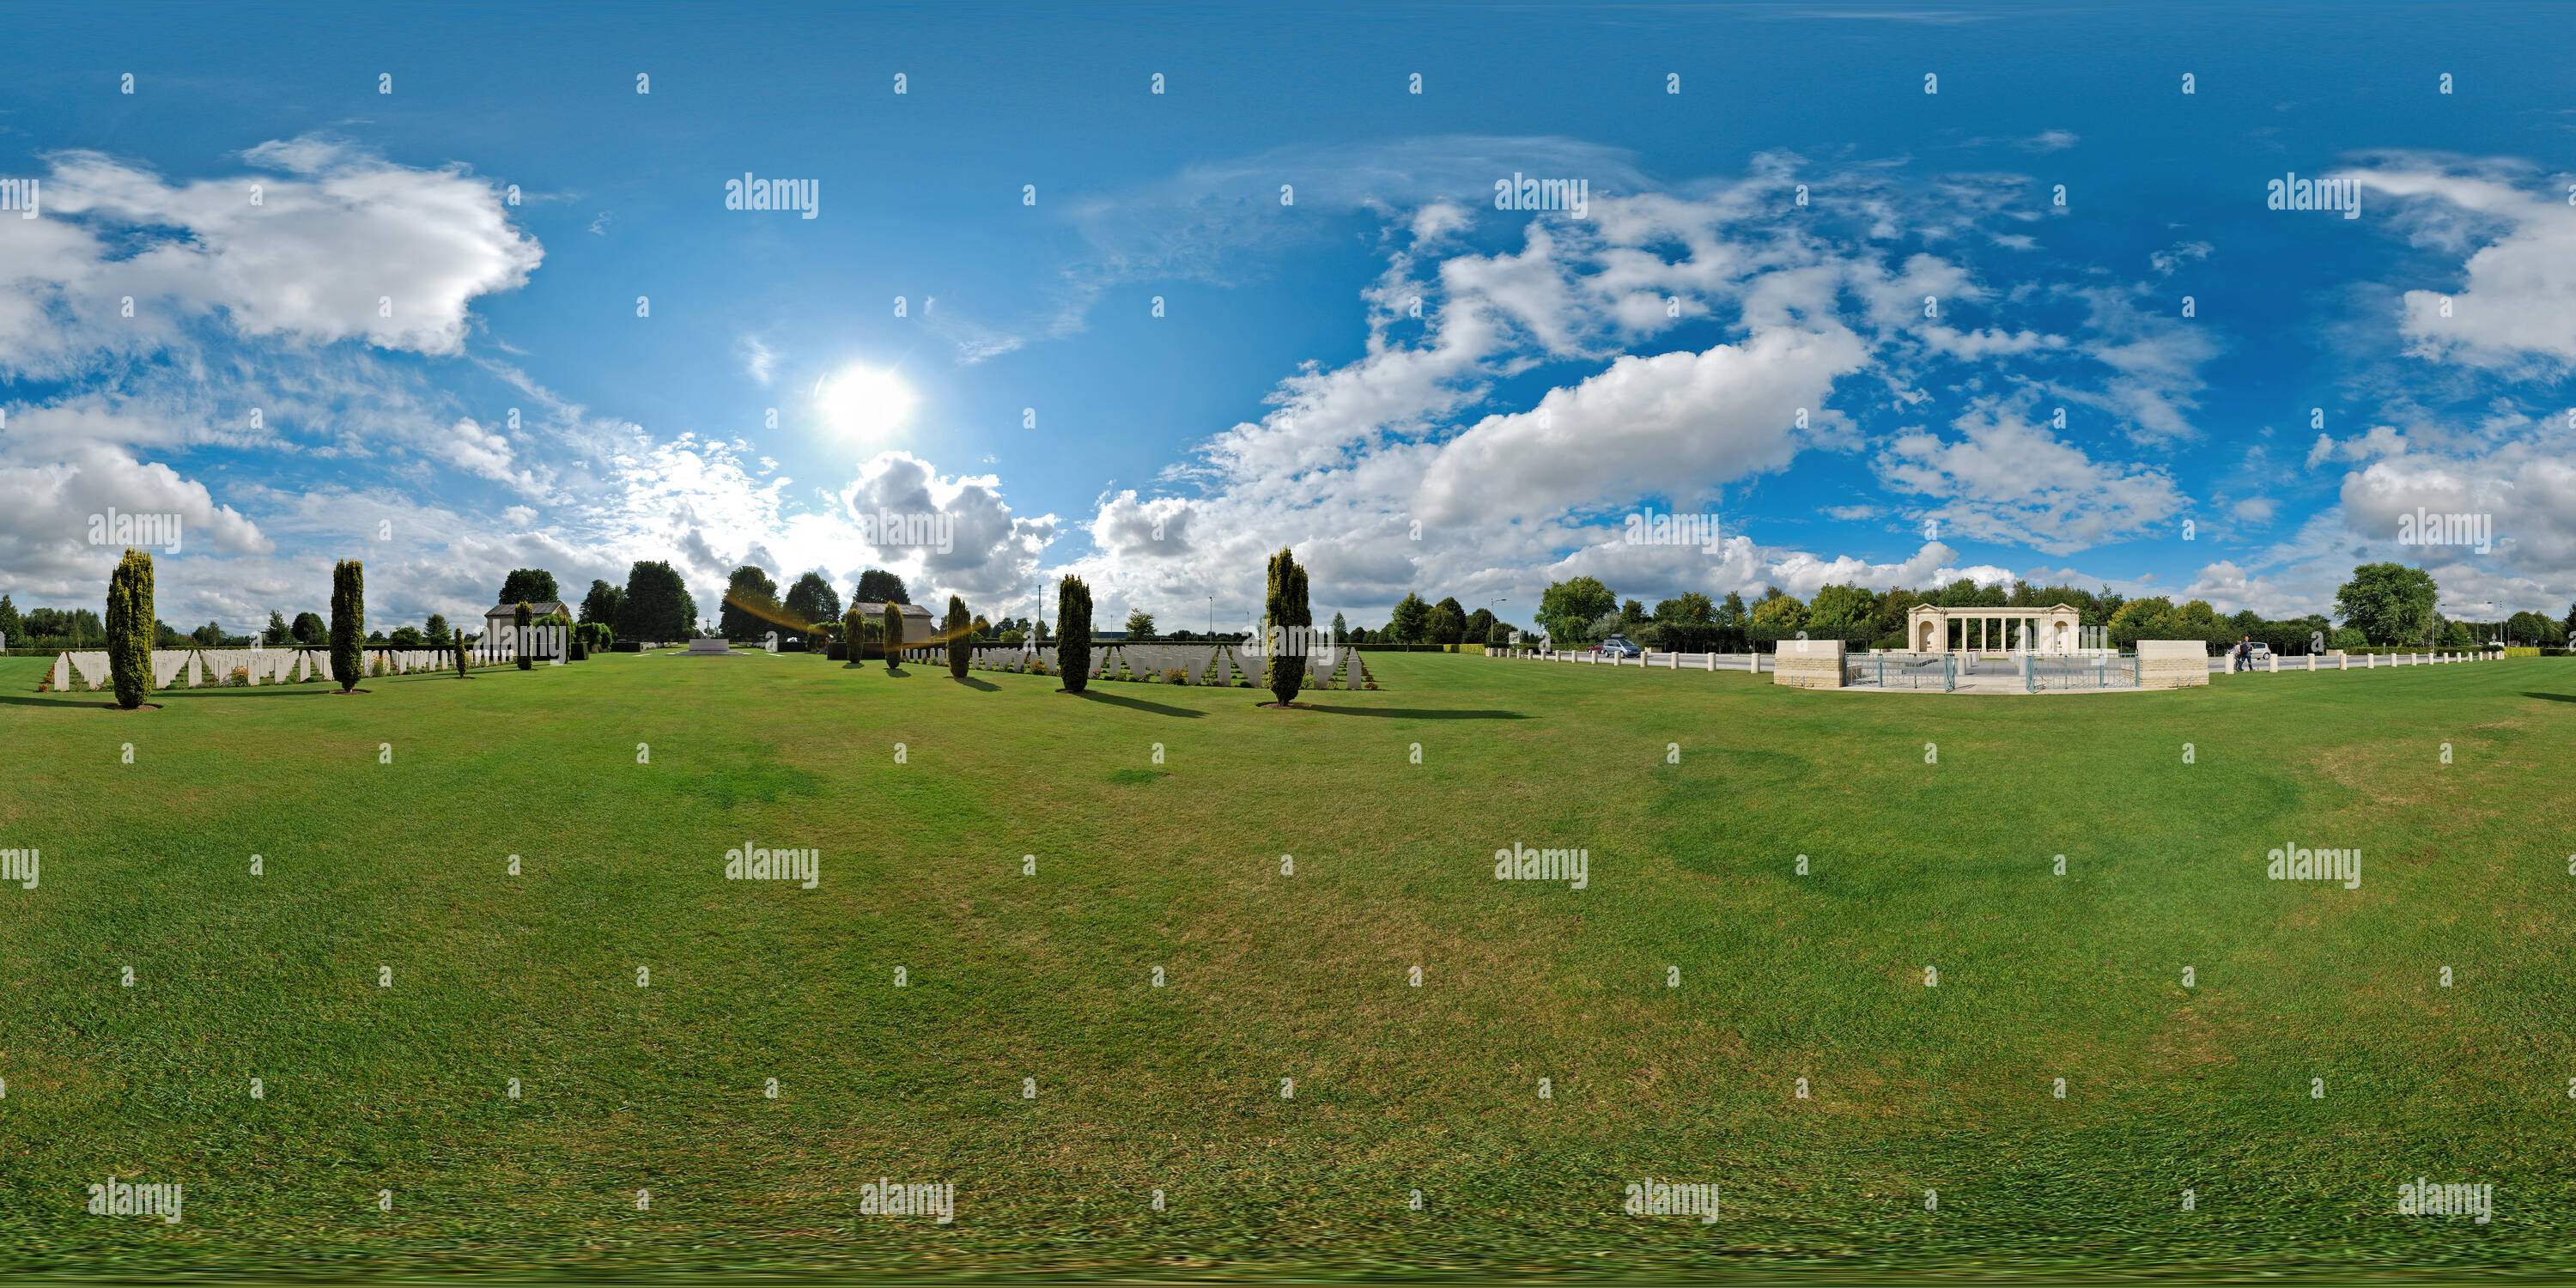 Cimetière britanique à Bayeux - France Photo Stock